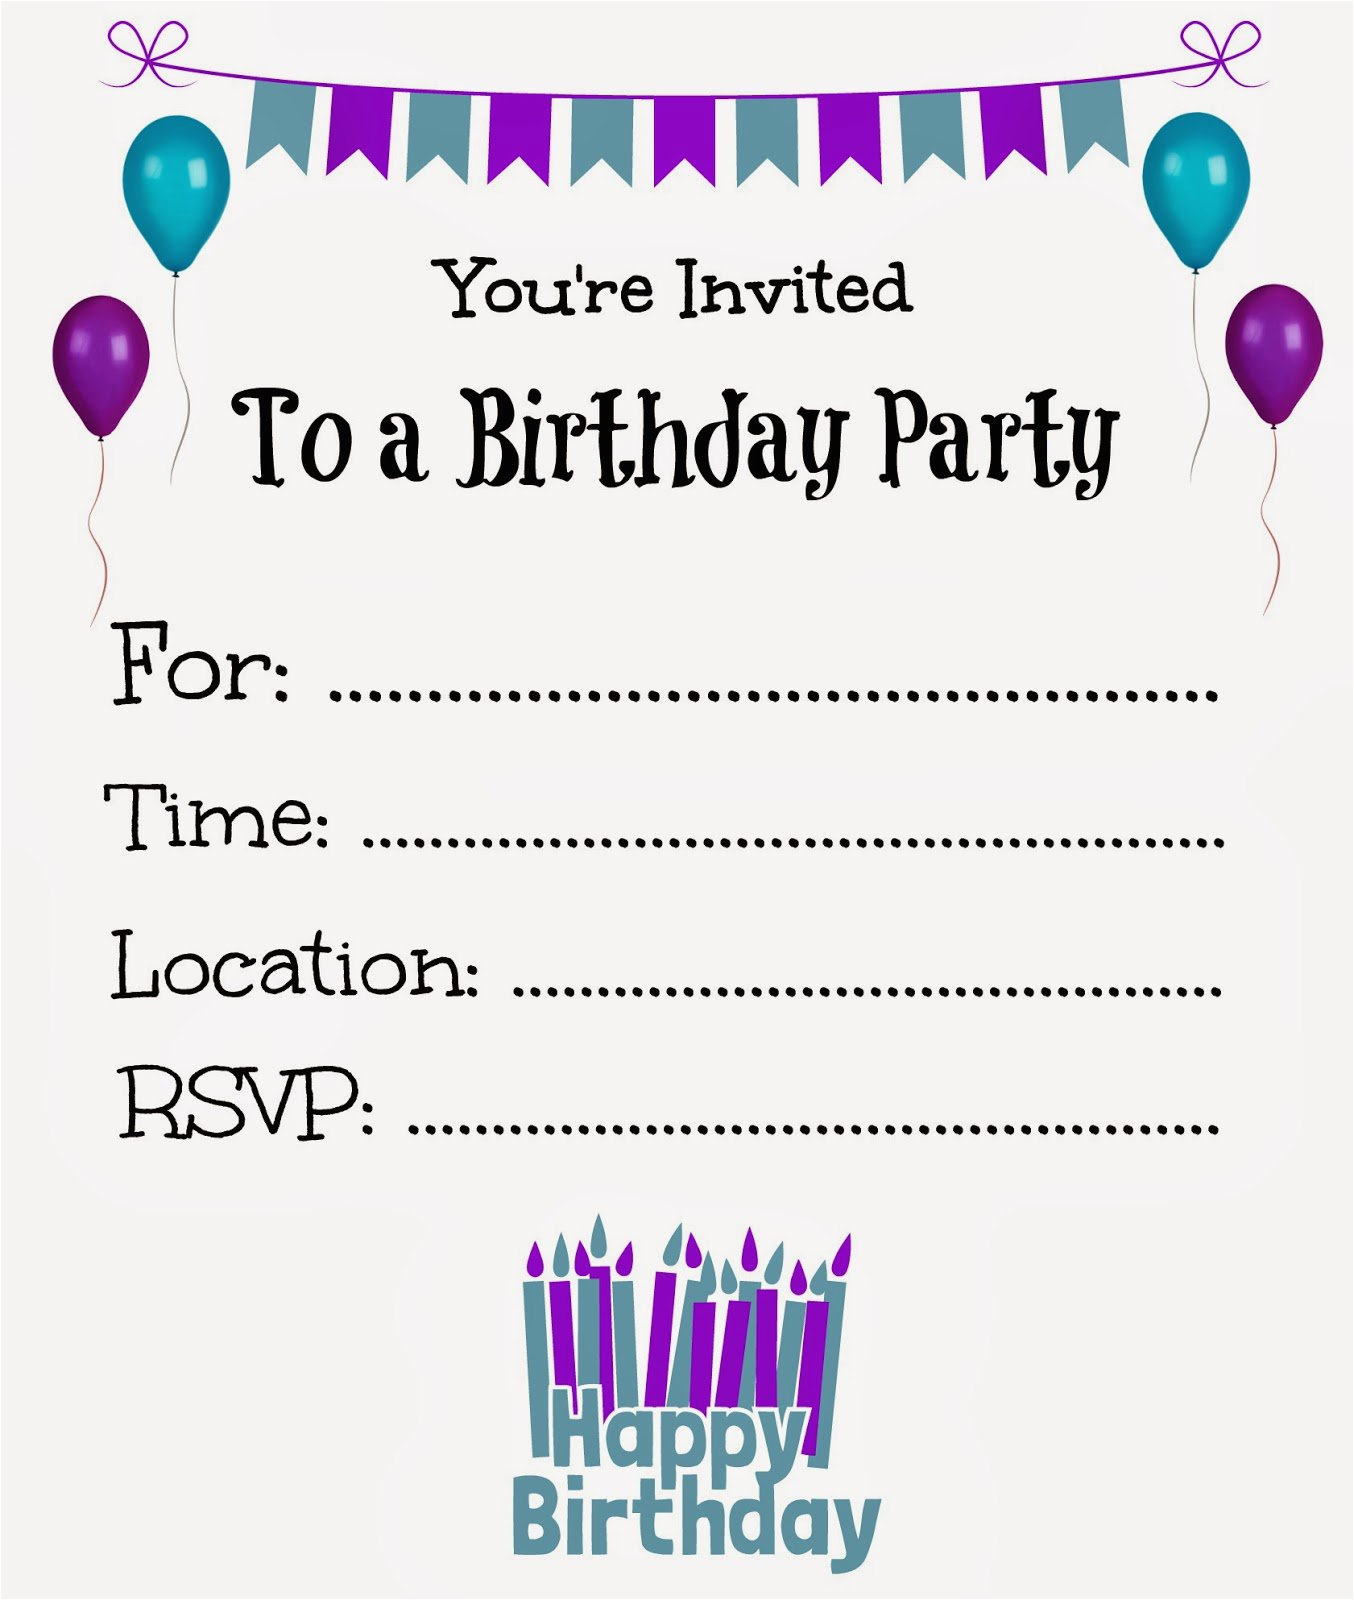 Make Your Own Birthday Invitations Online Free Printable Birthday - Make Your Own Birthday Party Invitations Free Printable